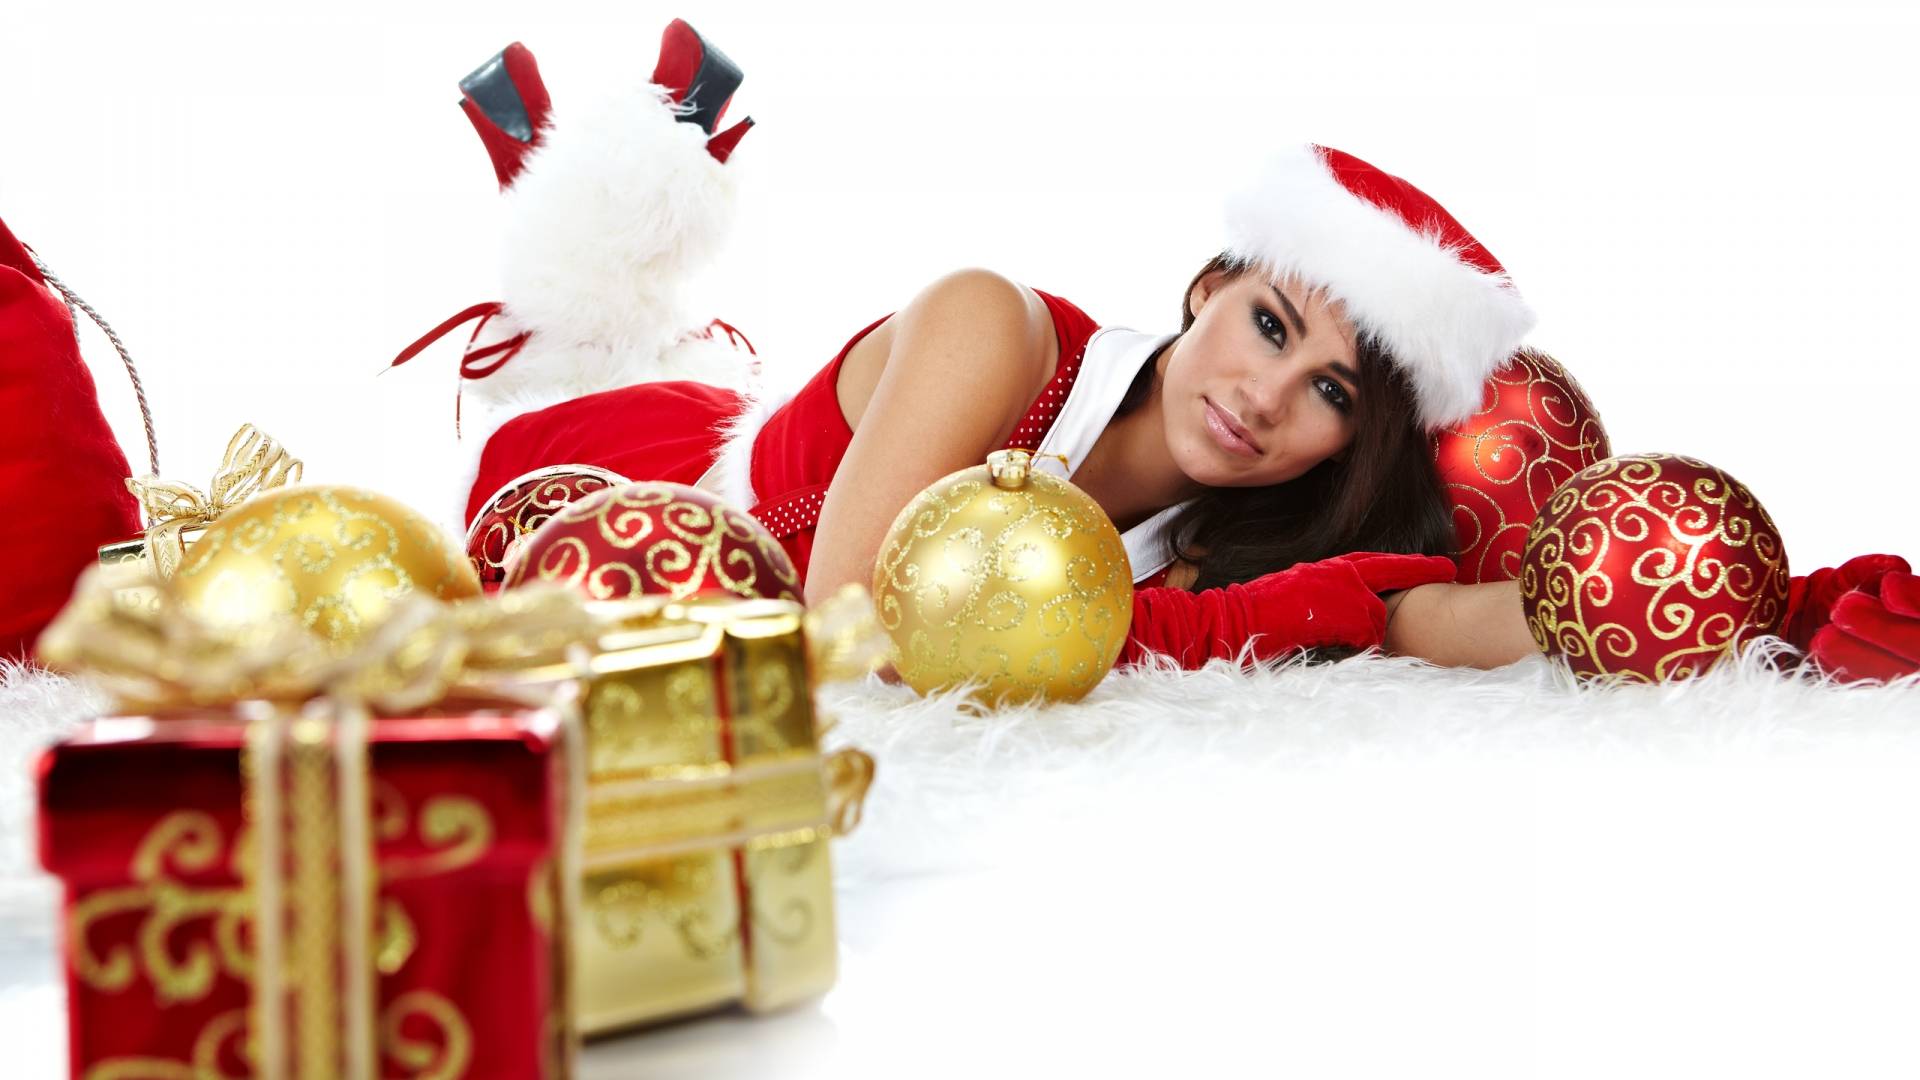 Santa Babe for 1920 x 1080 HDTV 1080p resolution